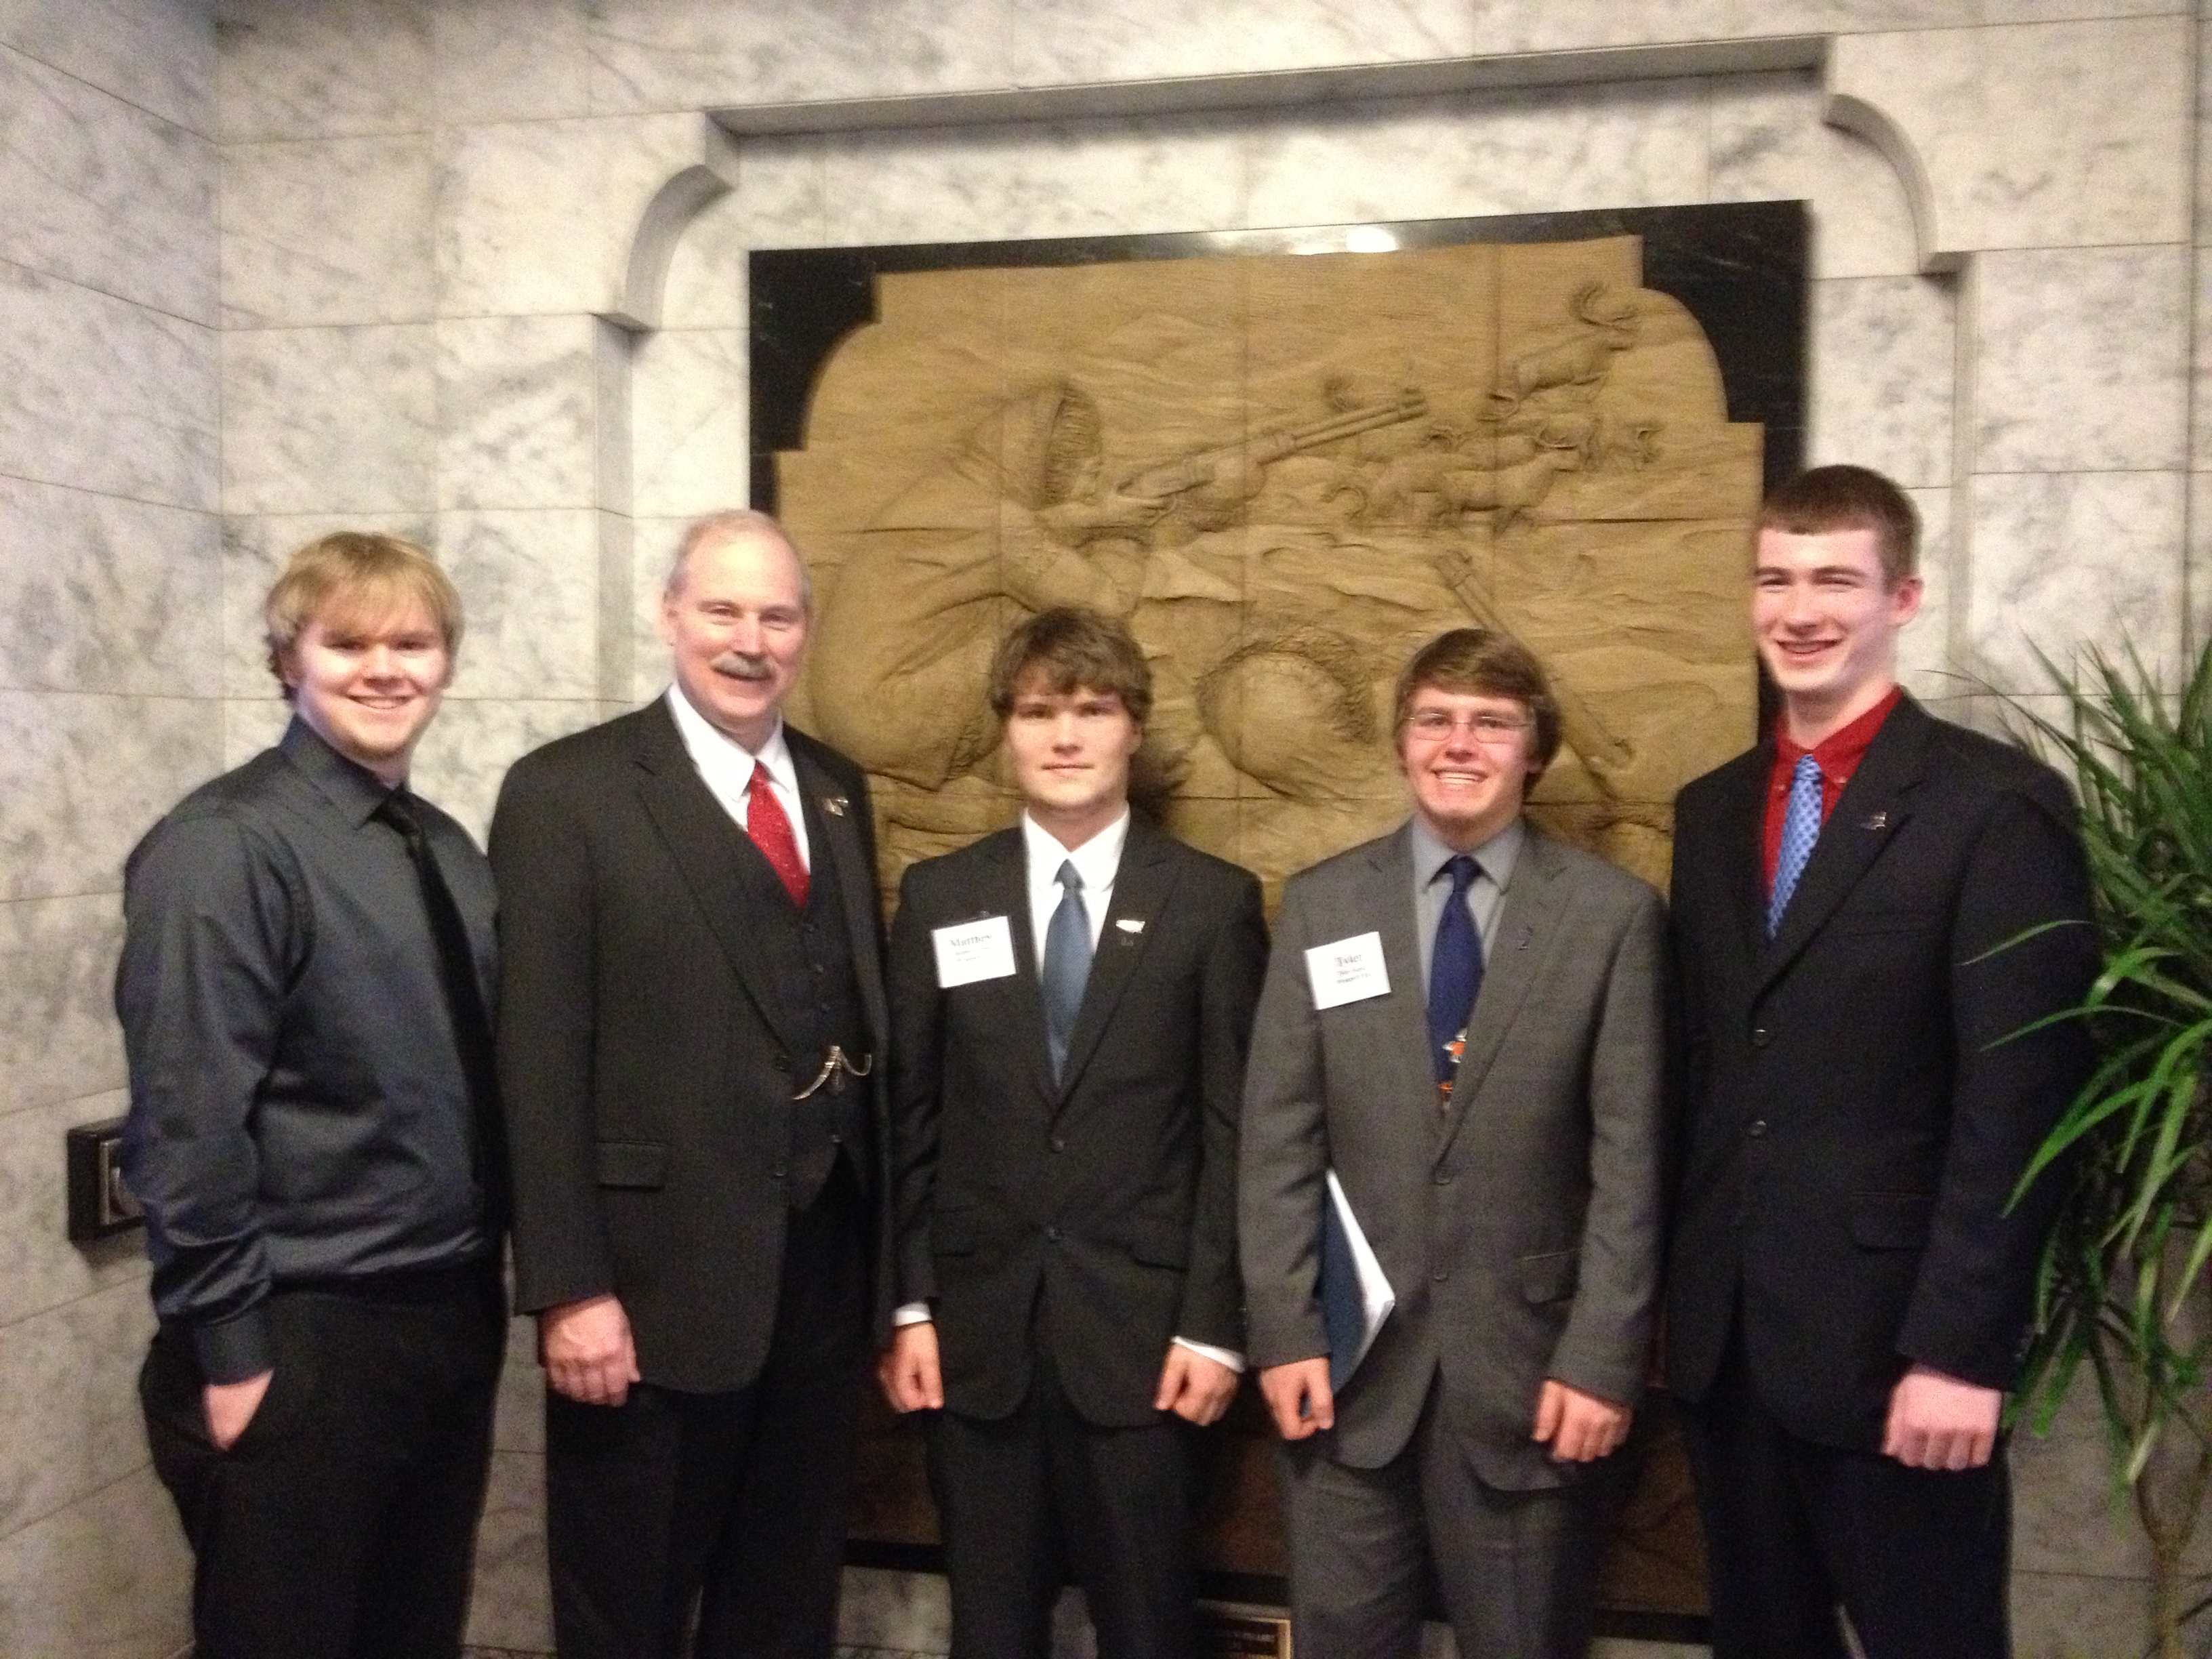 Senator Stedman with Wrangell High School Students (L to R) Lorenzo Stiva, Matthew Covalt, Tyler Eagle and Blaine Wilson